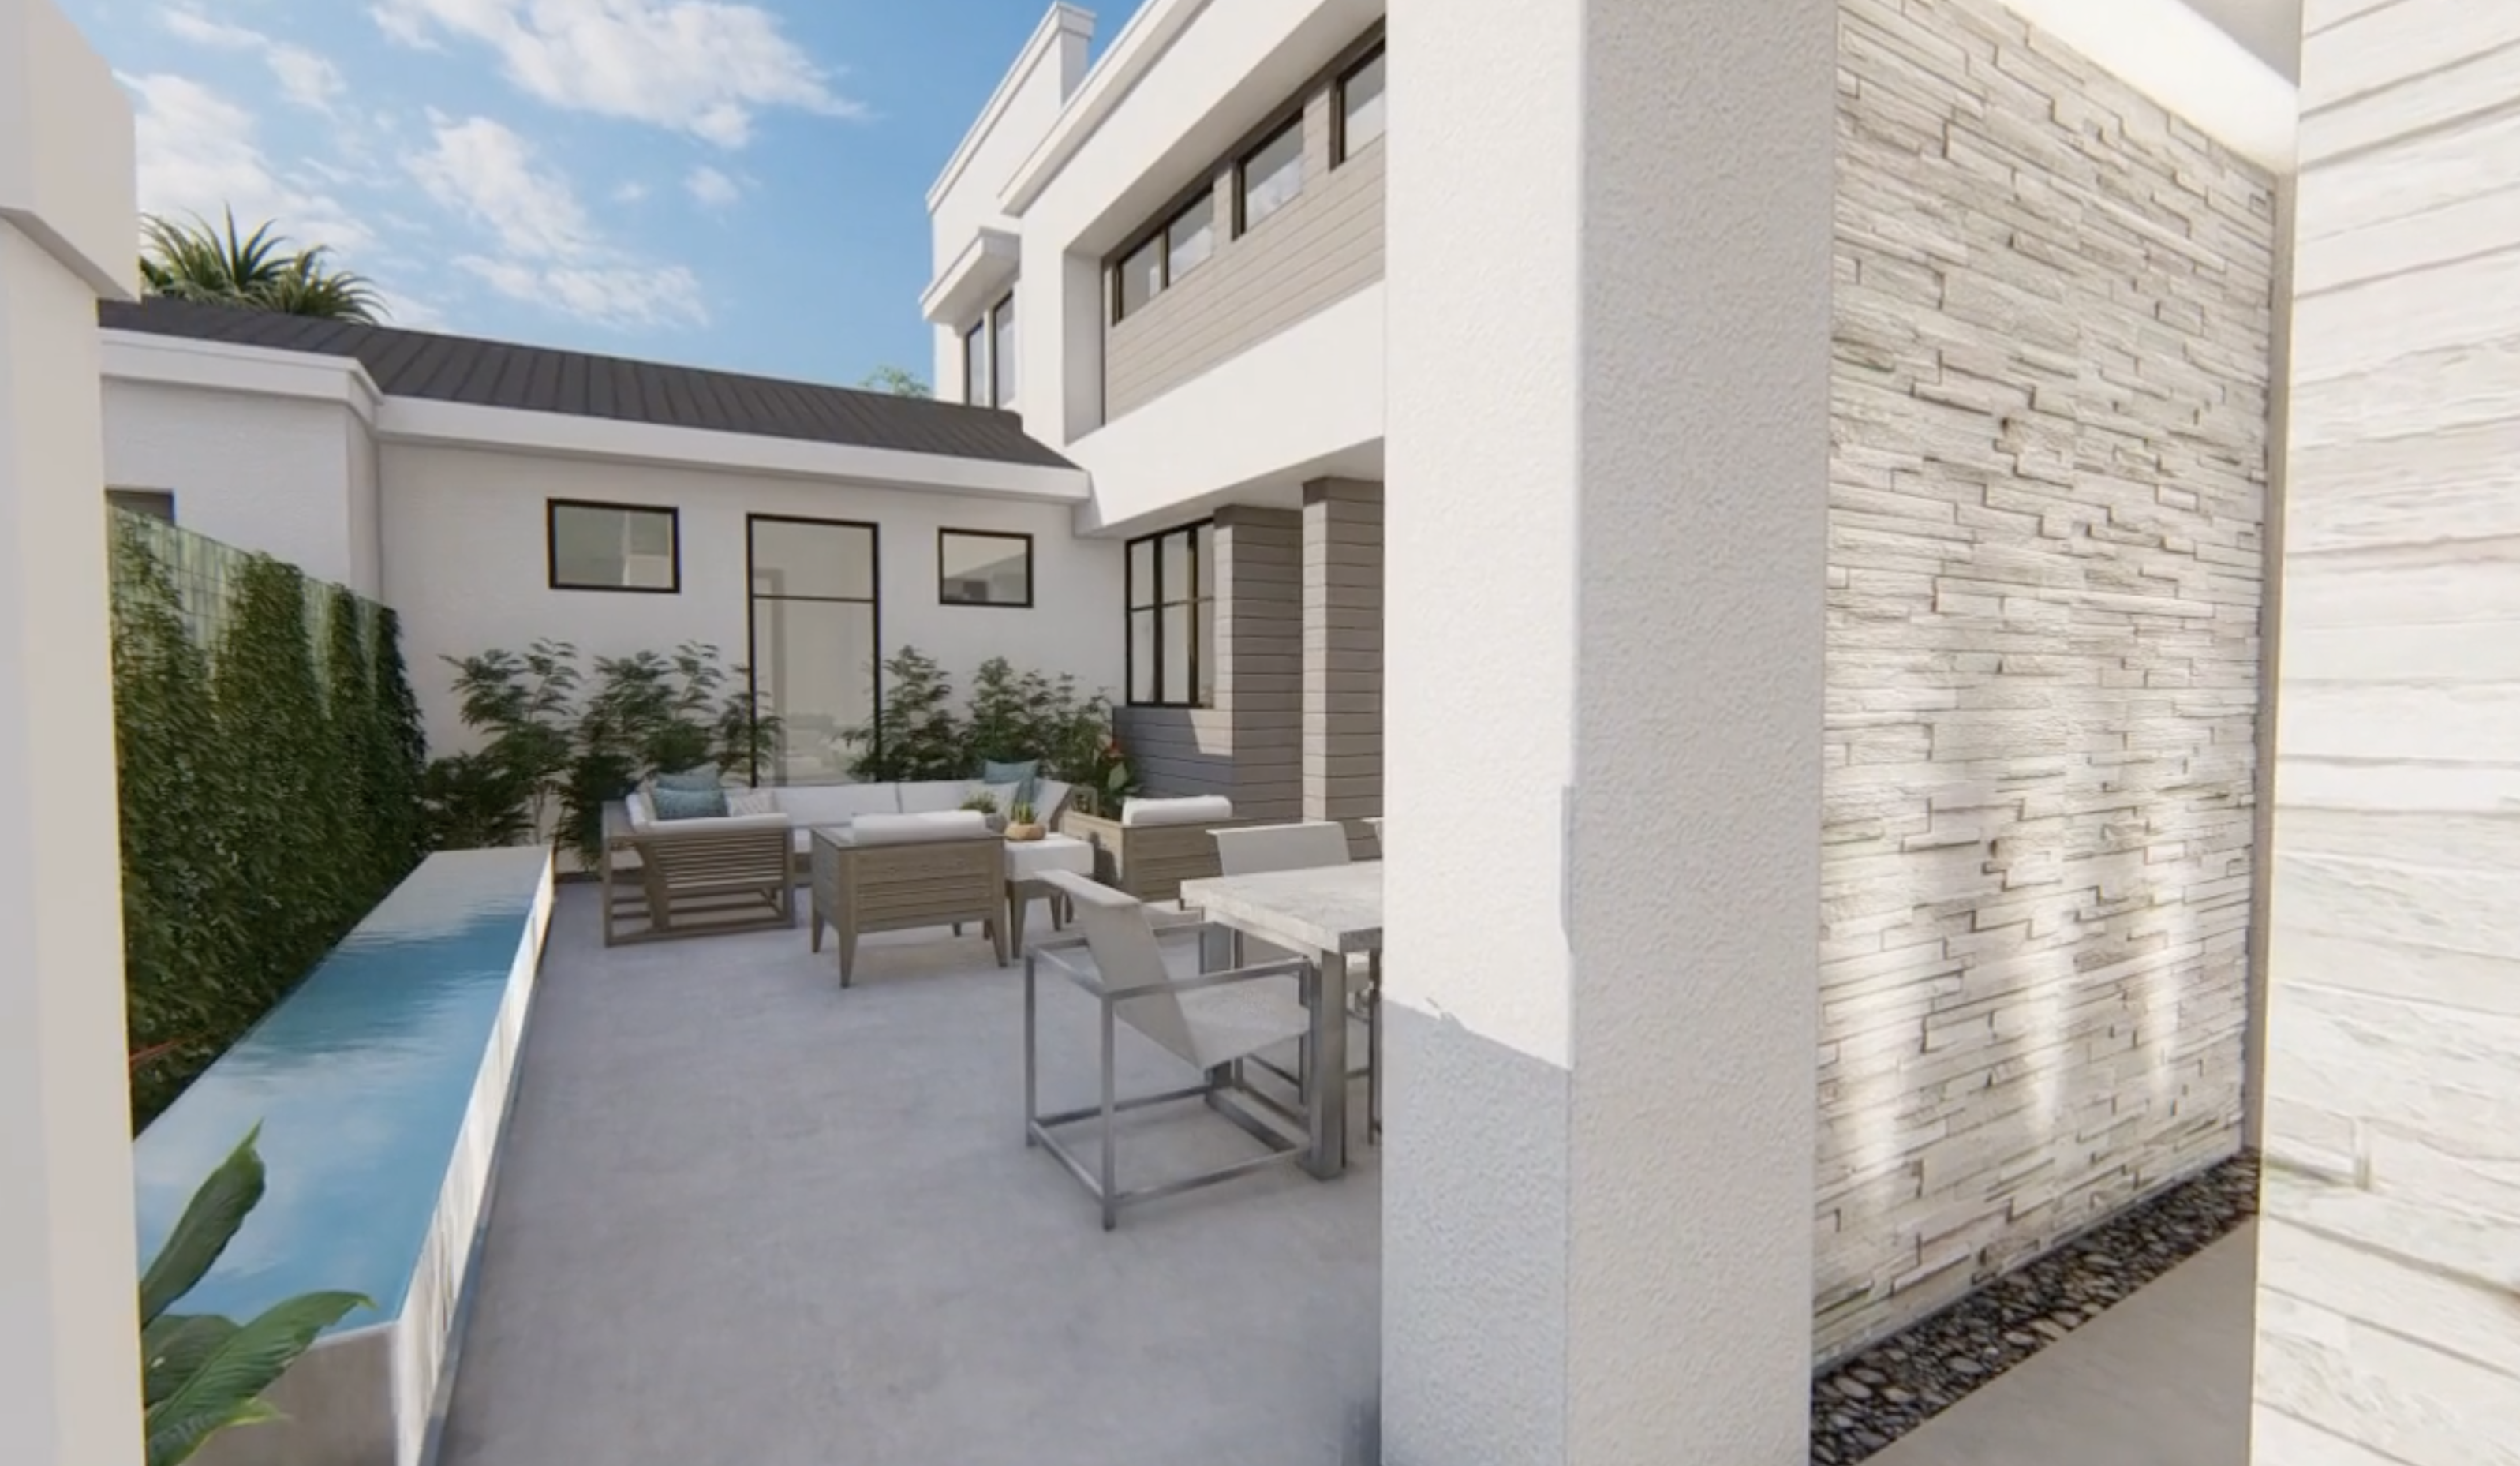 3d architectural visualization of home patio - phil kean design group